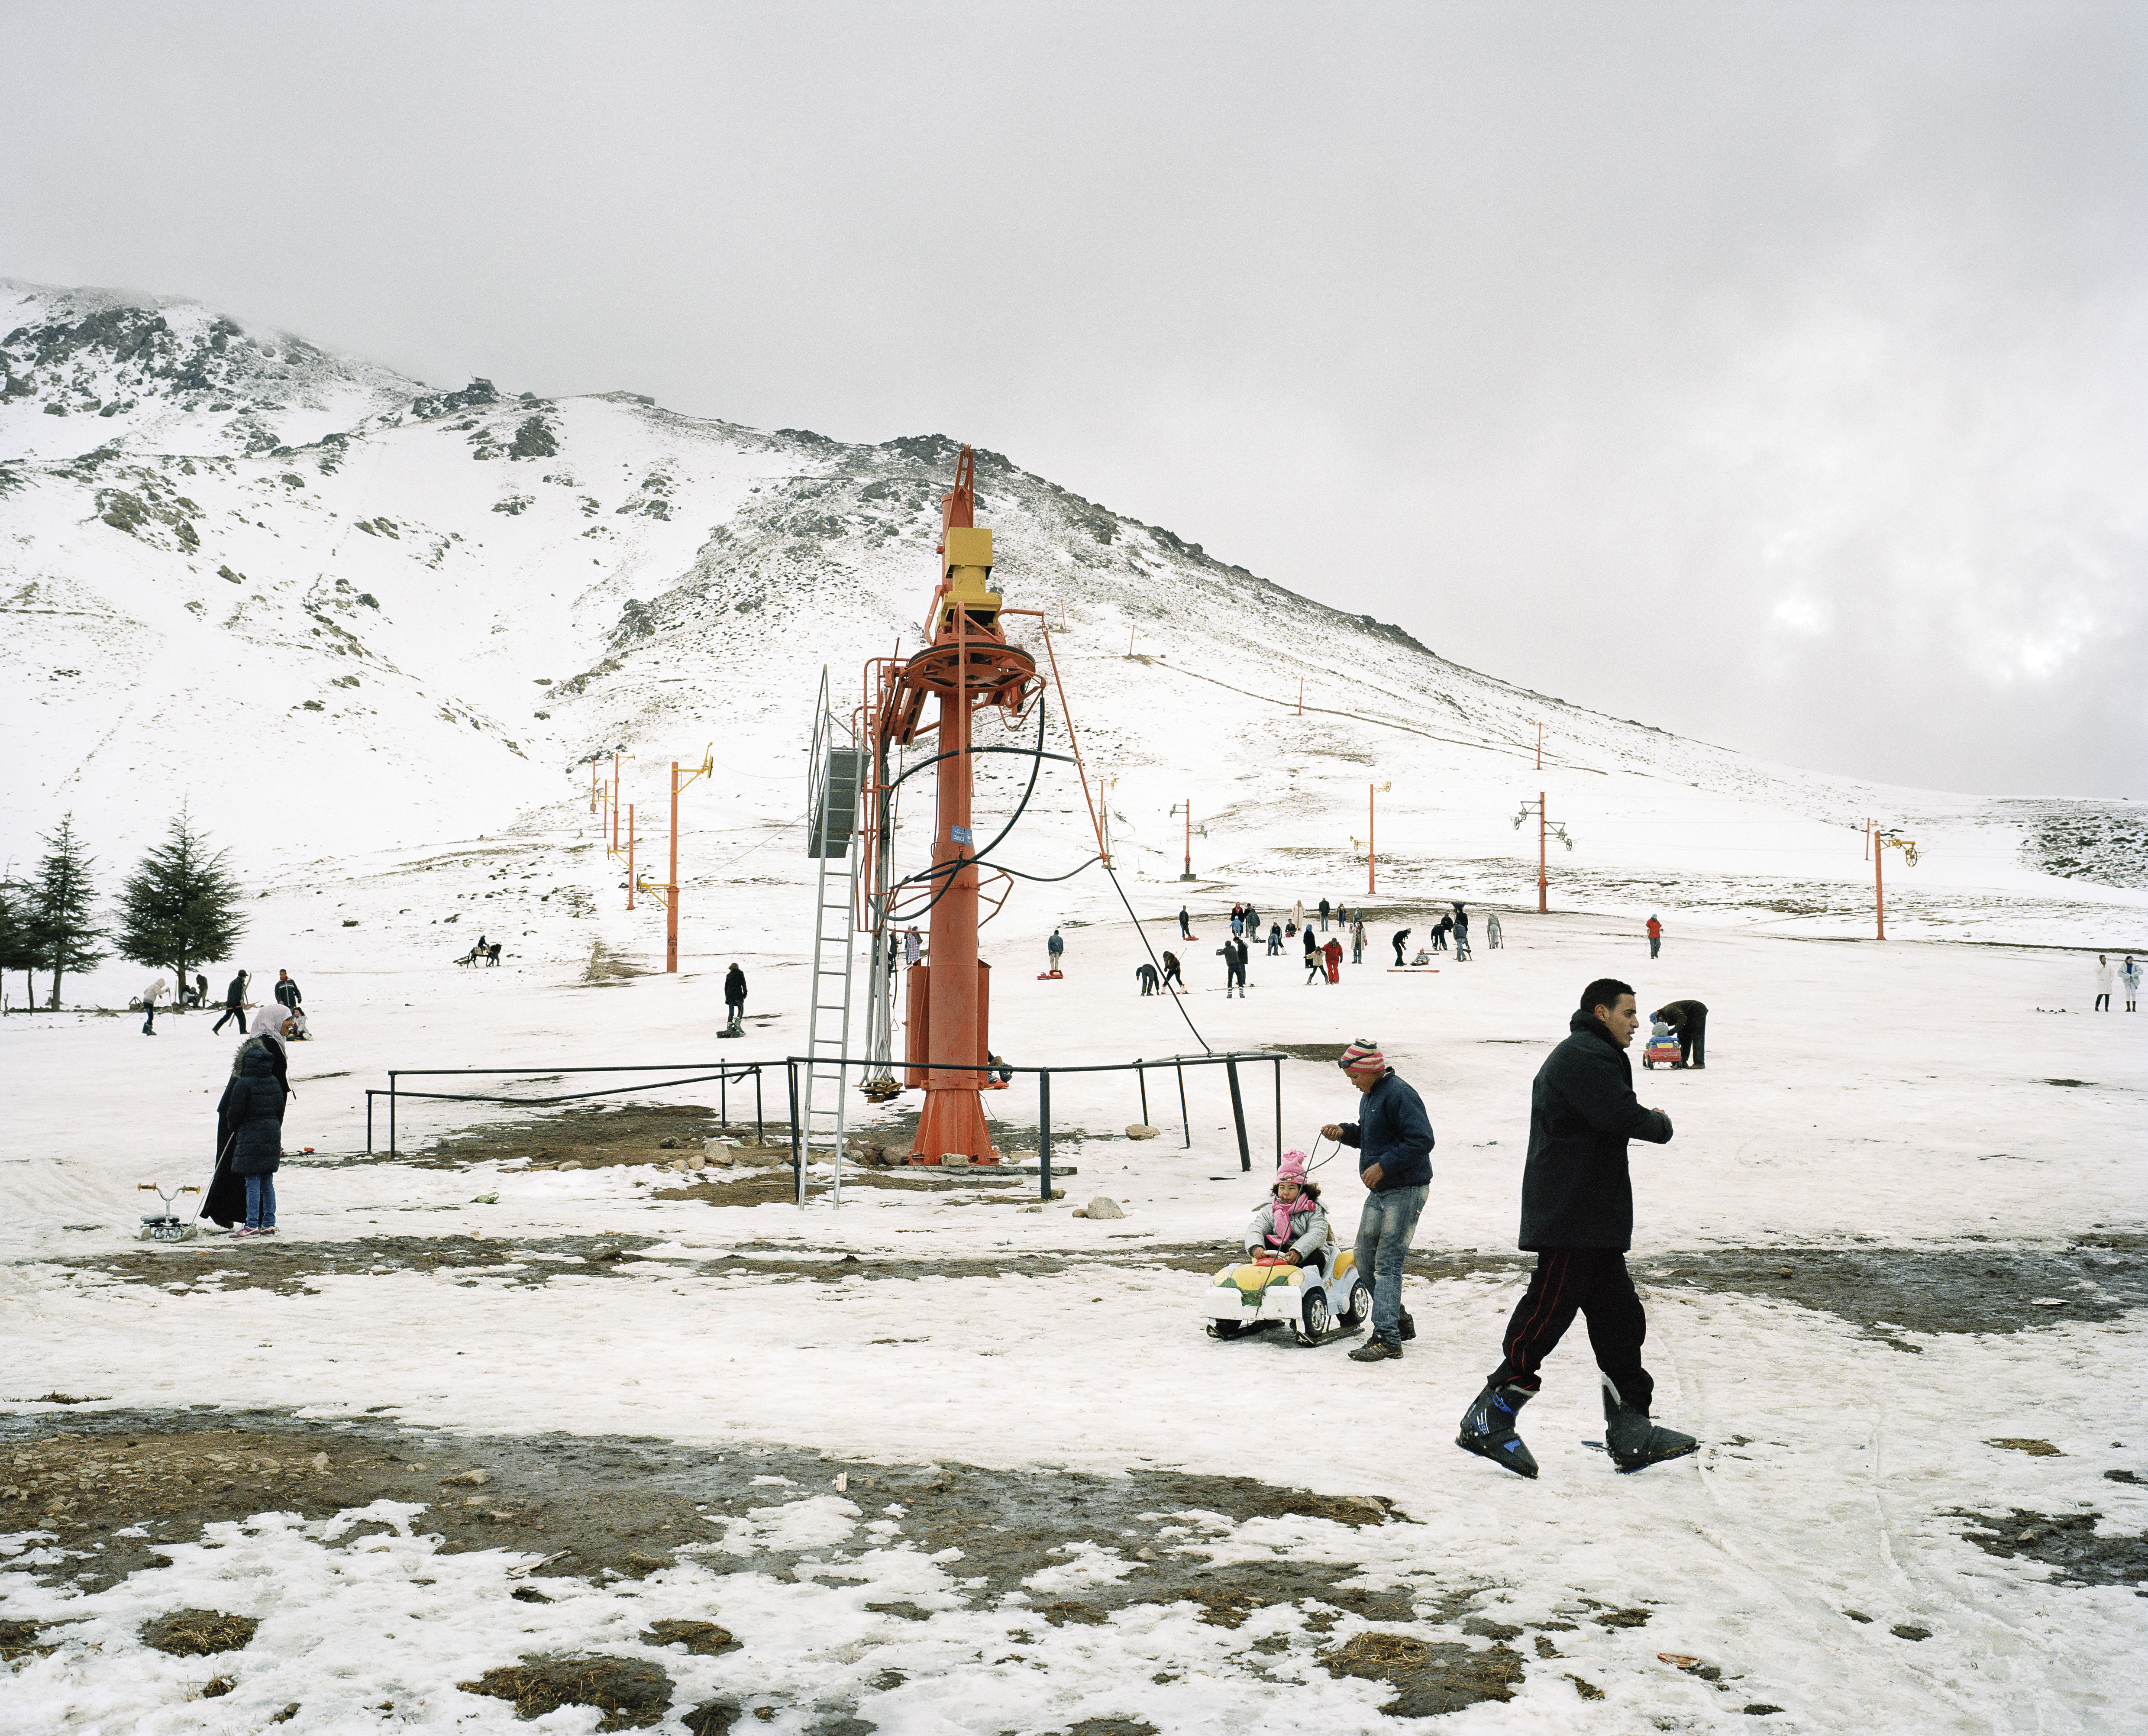 1: Dated skis at the summit of Jebel Oukaimeden. 2: People skiing and sledding down the slopes at the resort.